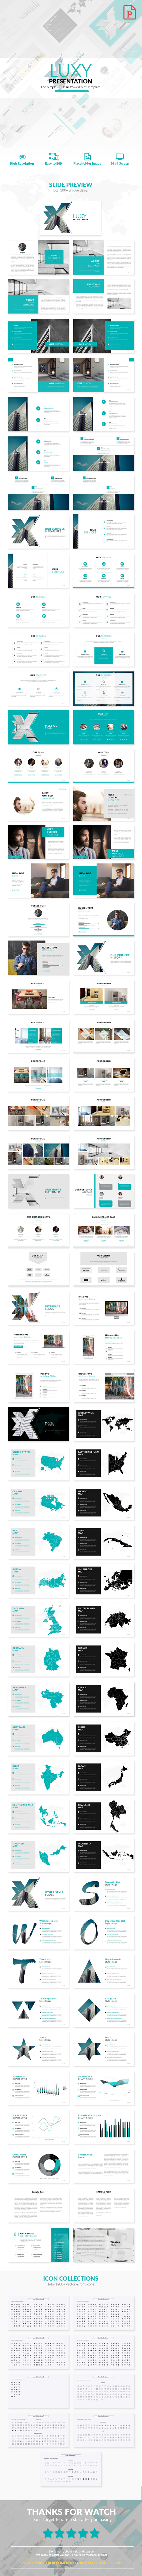 Luxy - Multipurpose PowerPoint Template - Creative PowerPoint Templates